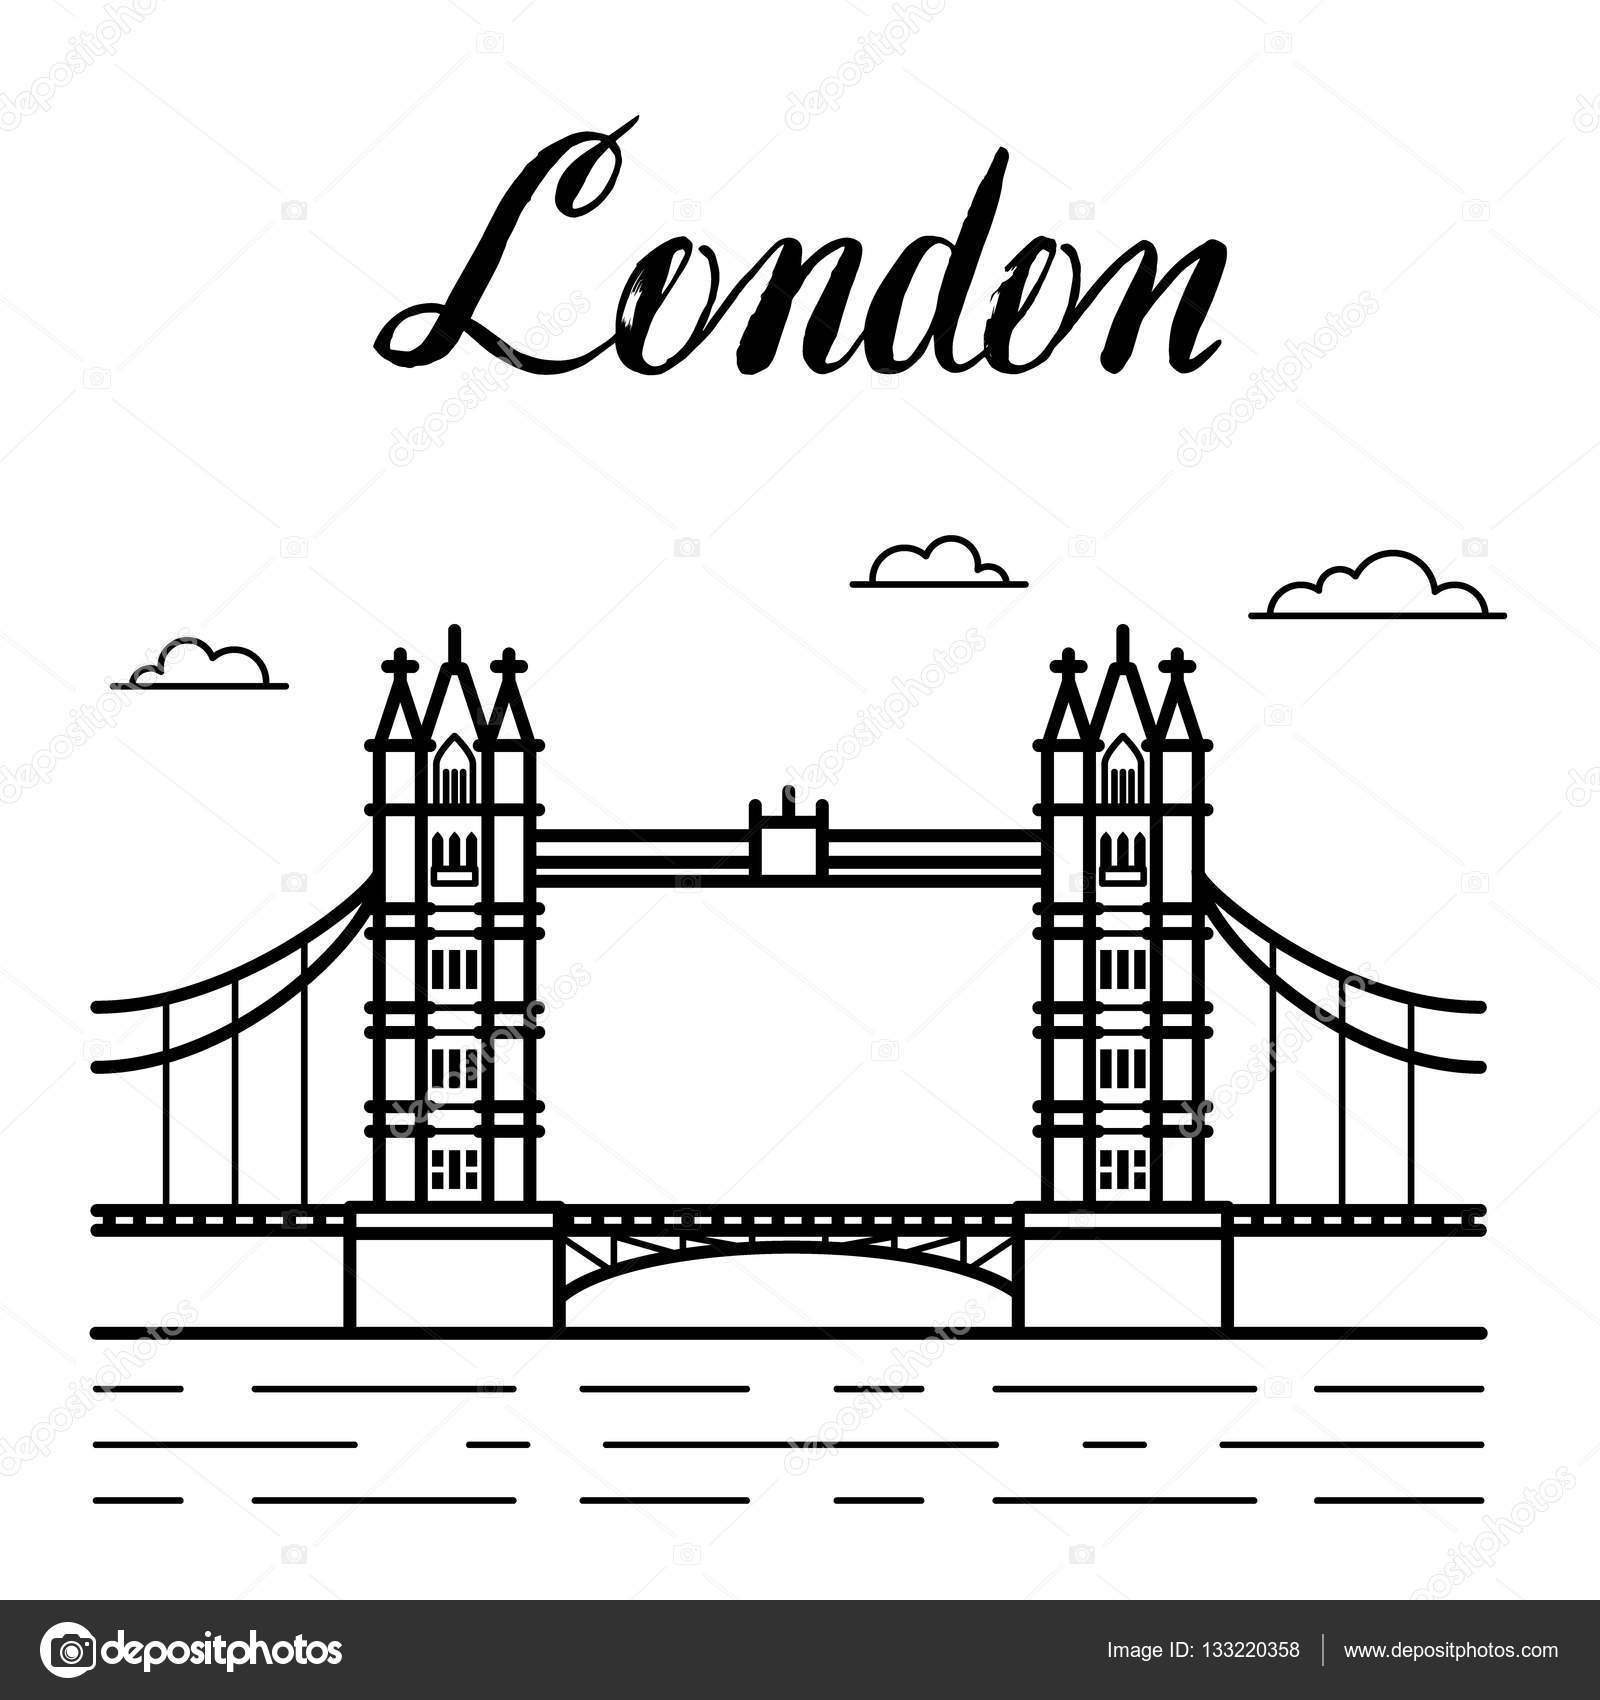 Dessin Au Trait Ville London Tower Bridge Building